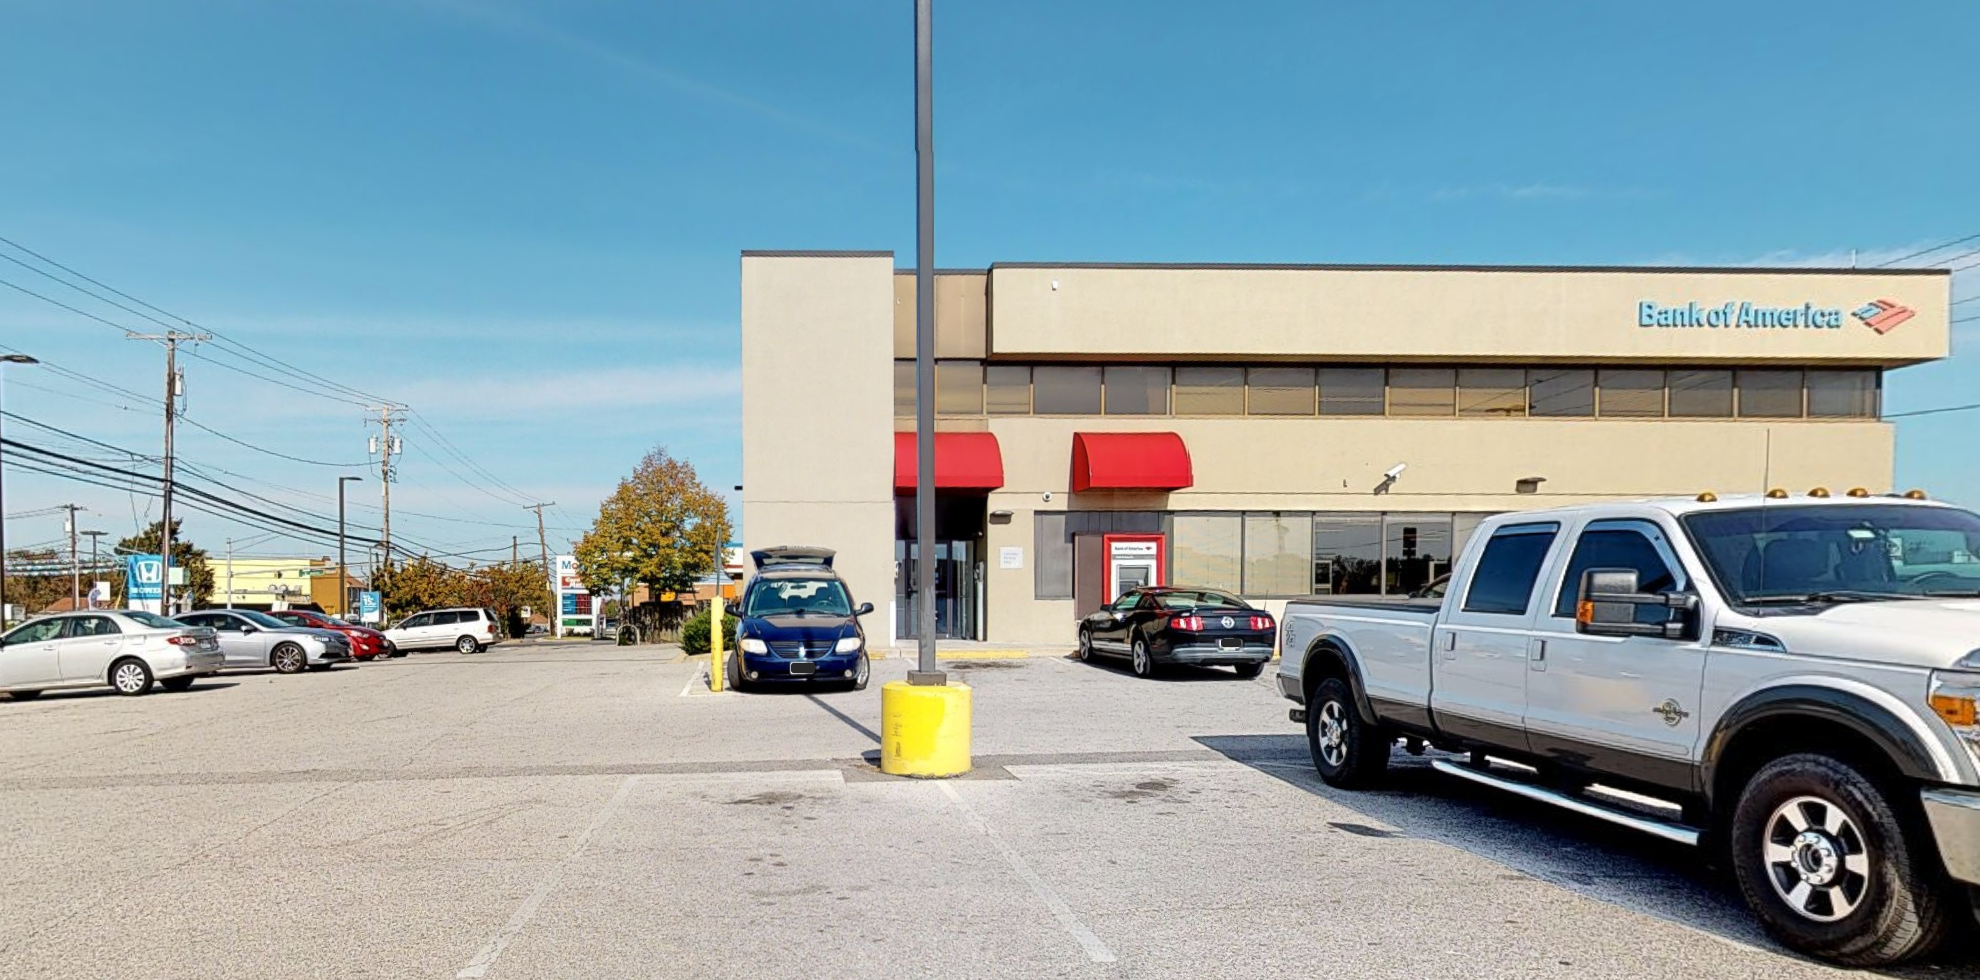 Bank of America financial center with drive-thru ATM | 7206 Ritchie Hwy, Glen Burnie, MD 21061